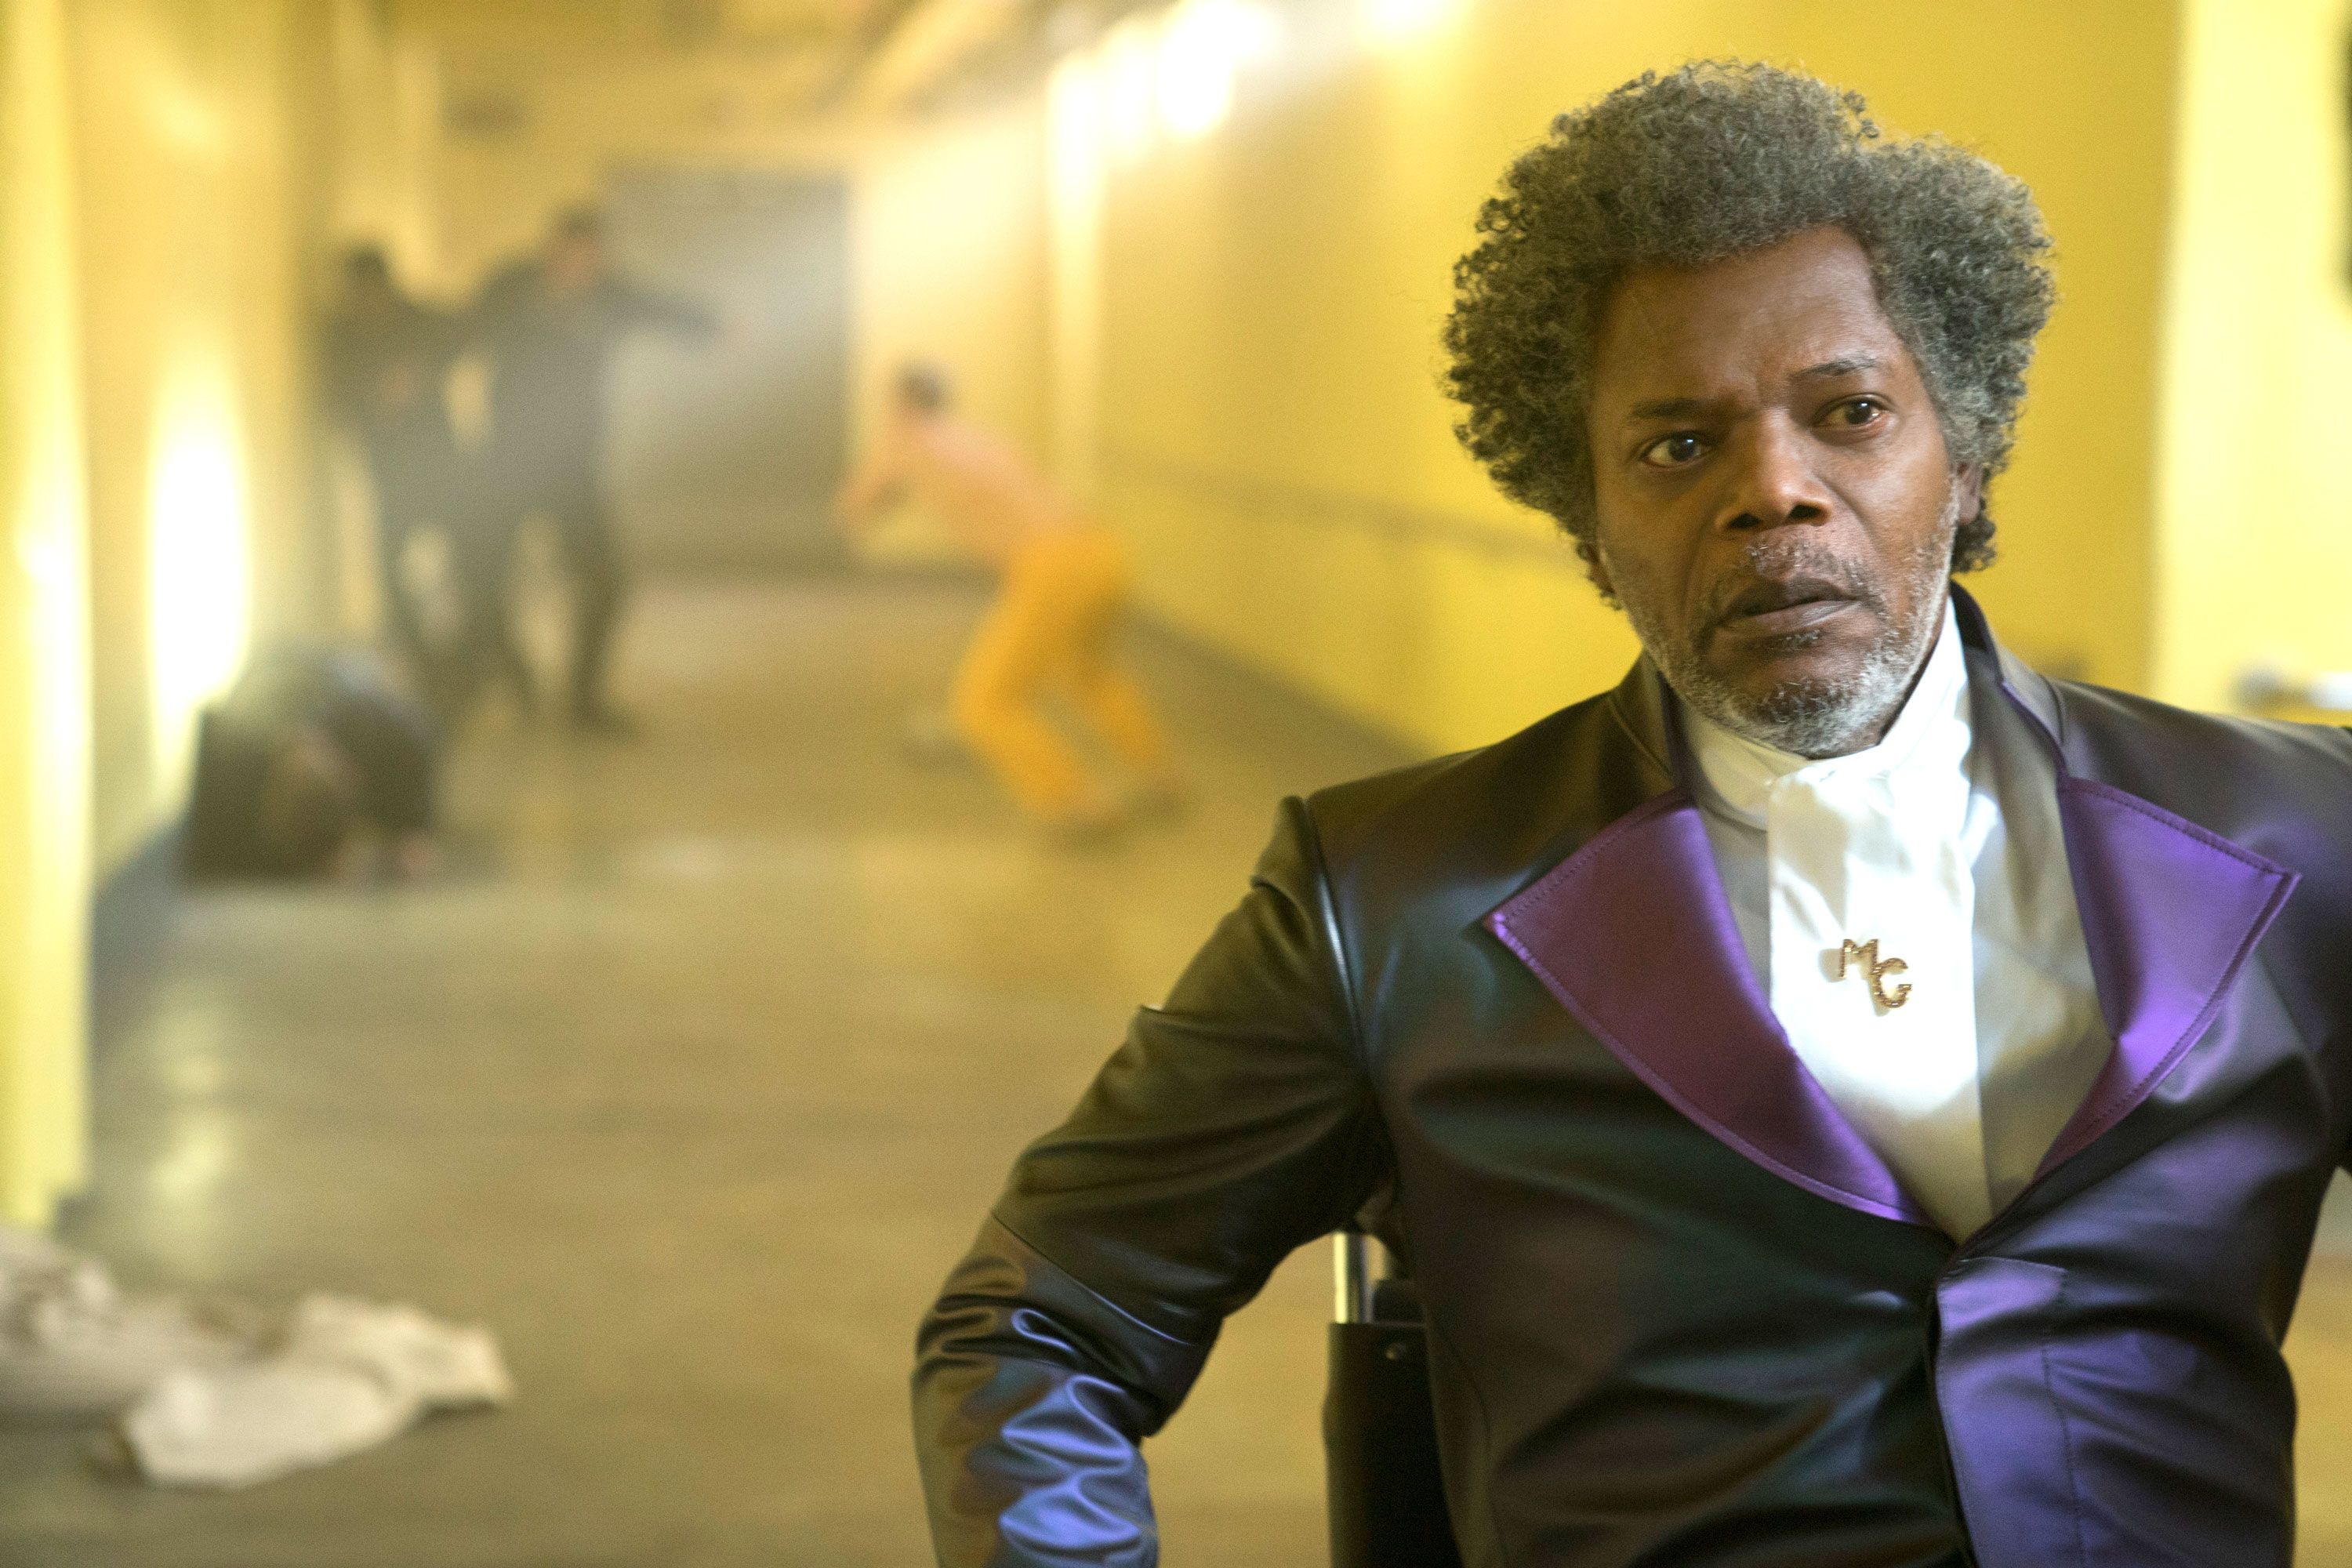 Glass review - Unbreakable and Split sequel reviewed